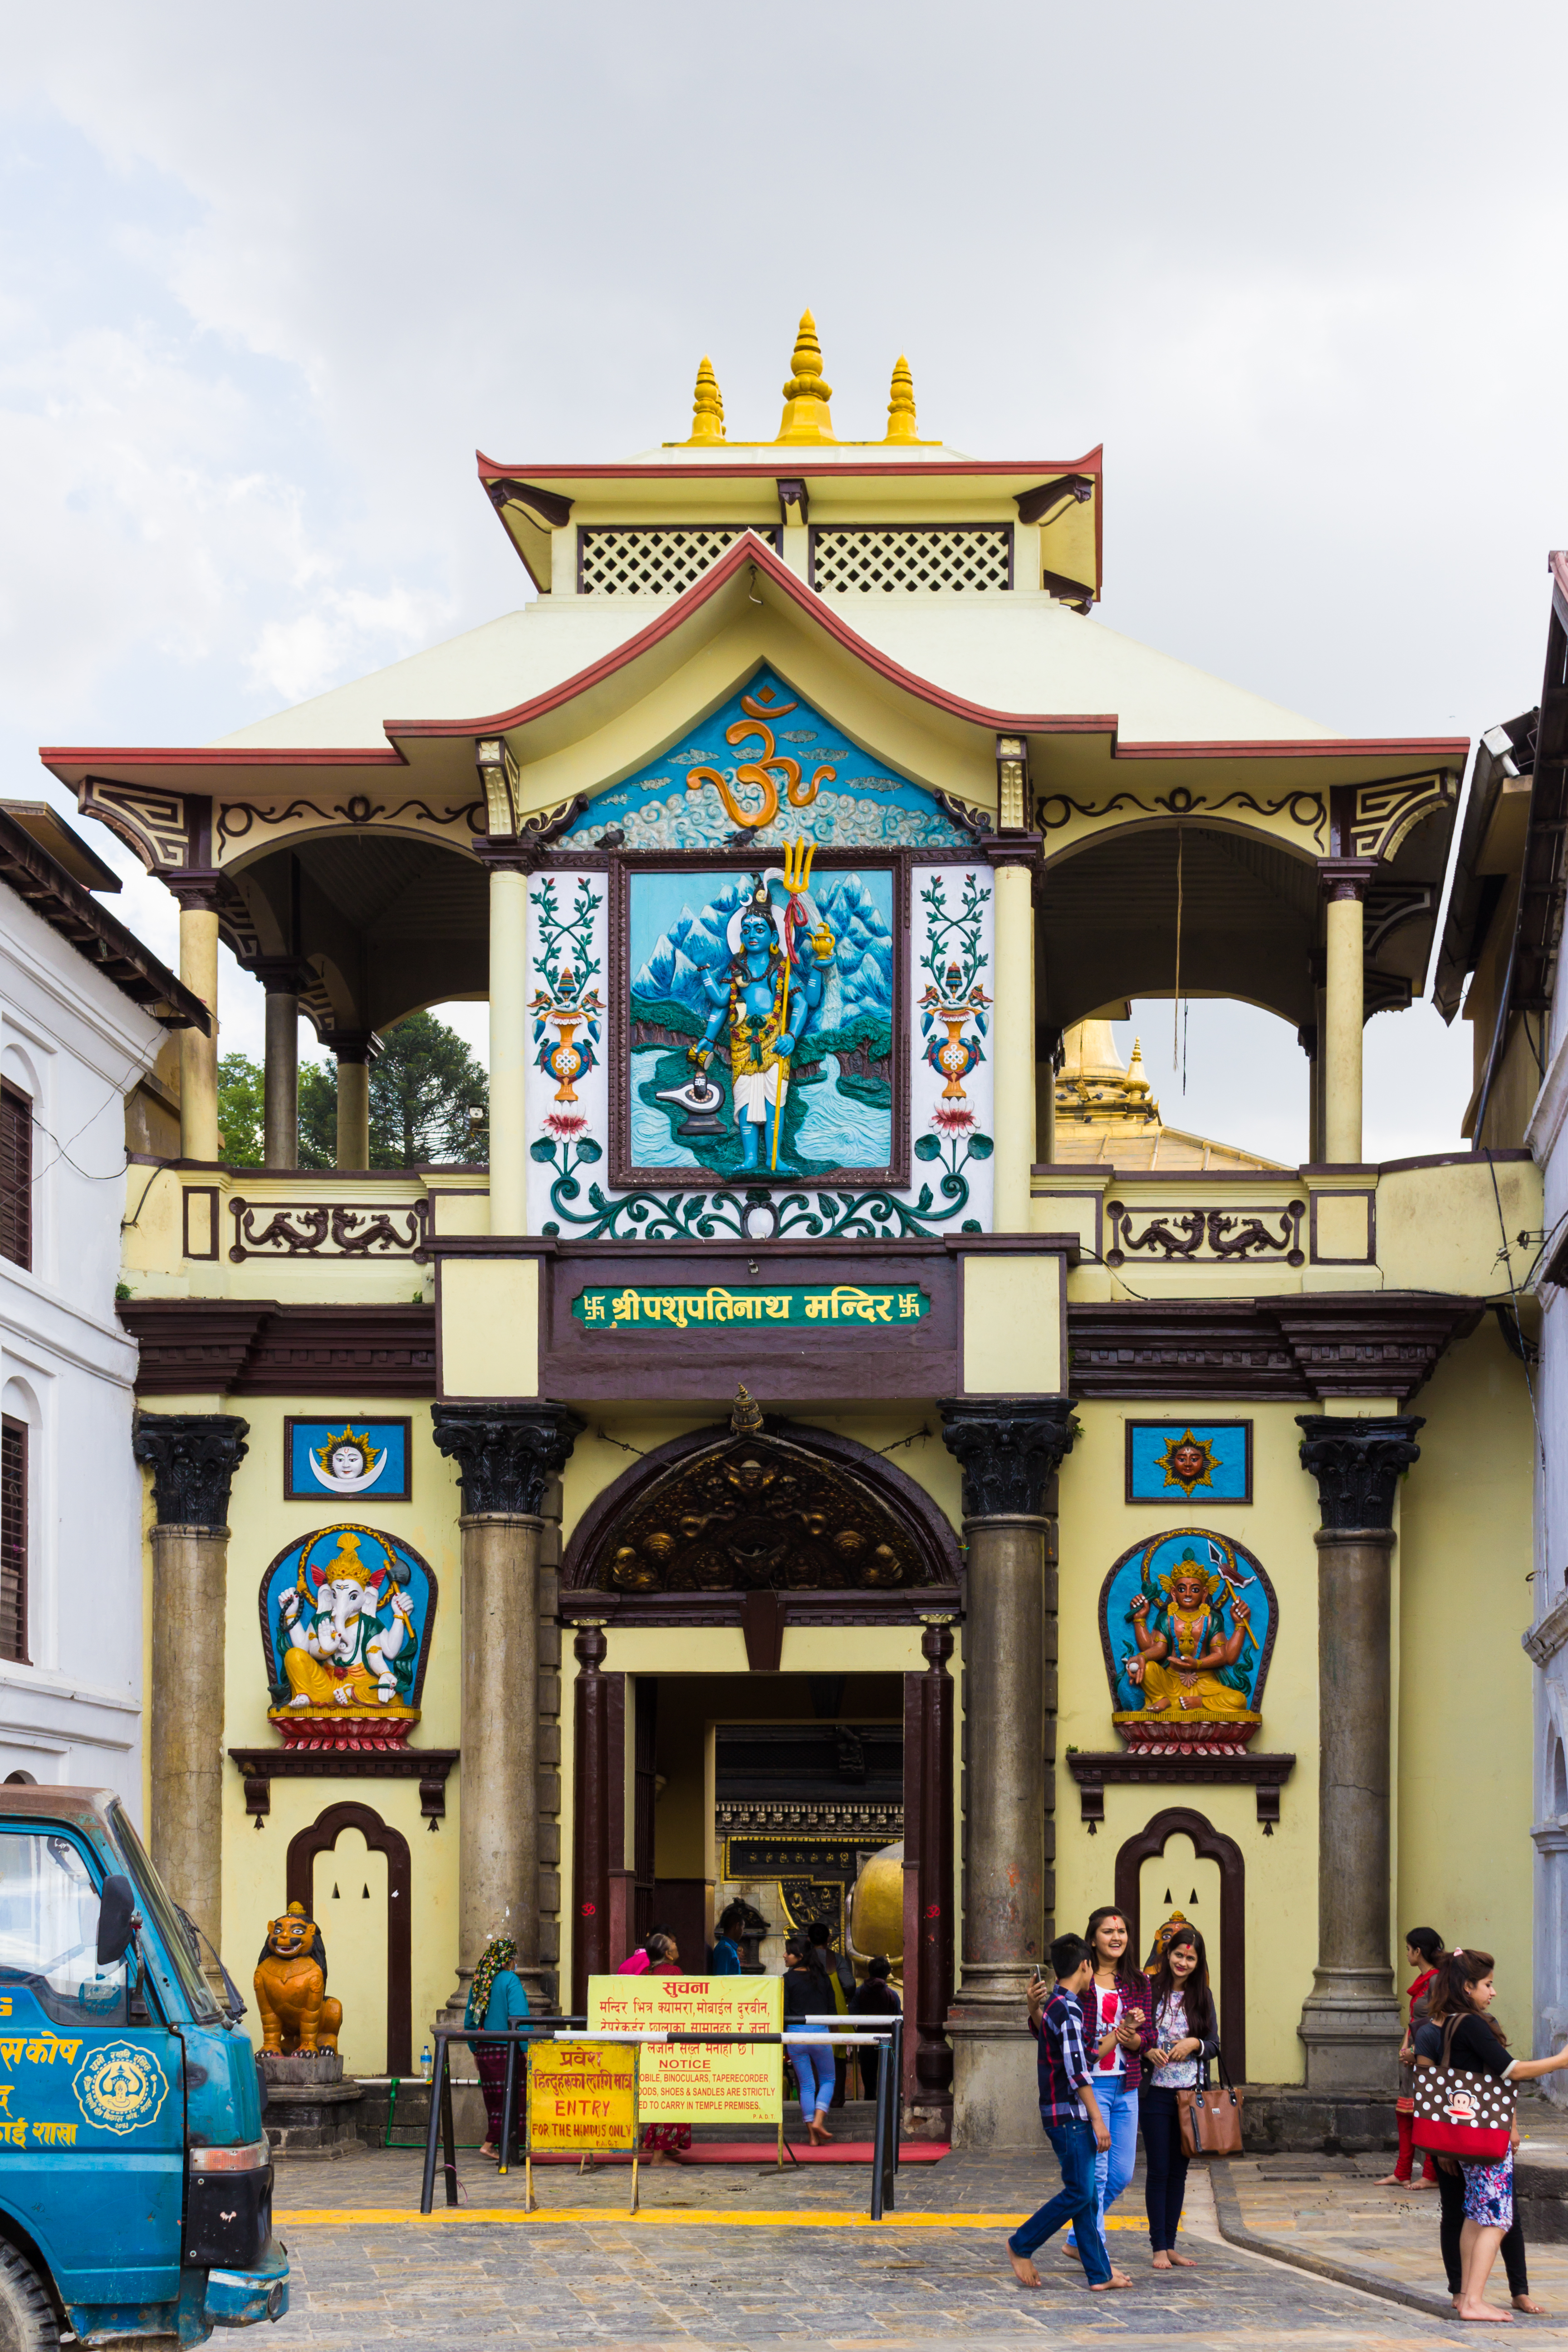 File:Pasupatinath Temple, Front gate-IMG 3501.jpg - Wikipedia